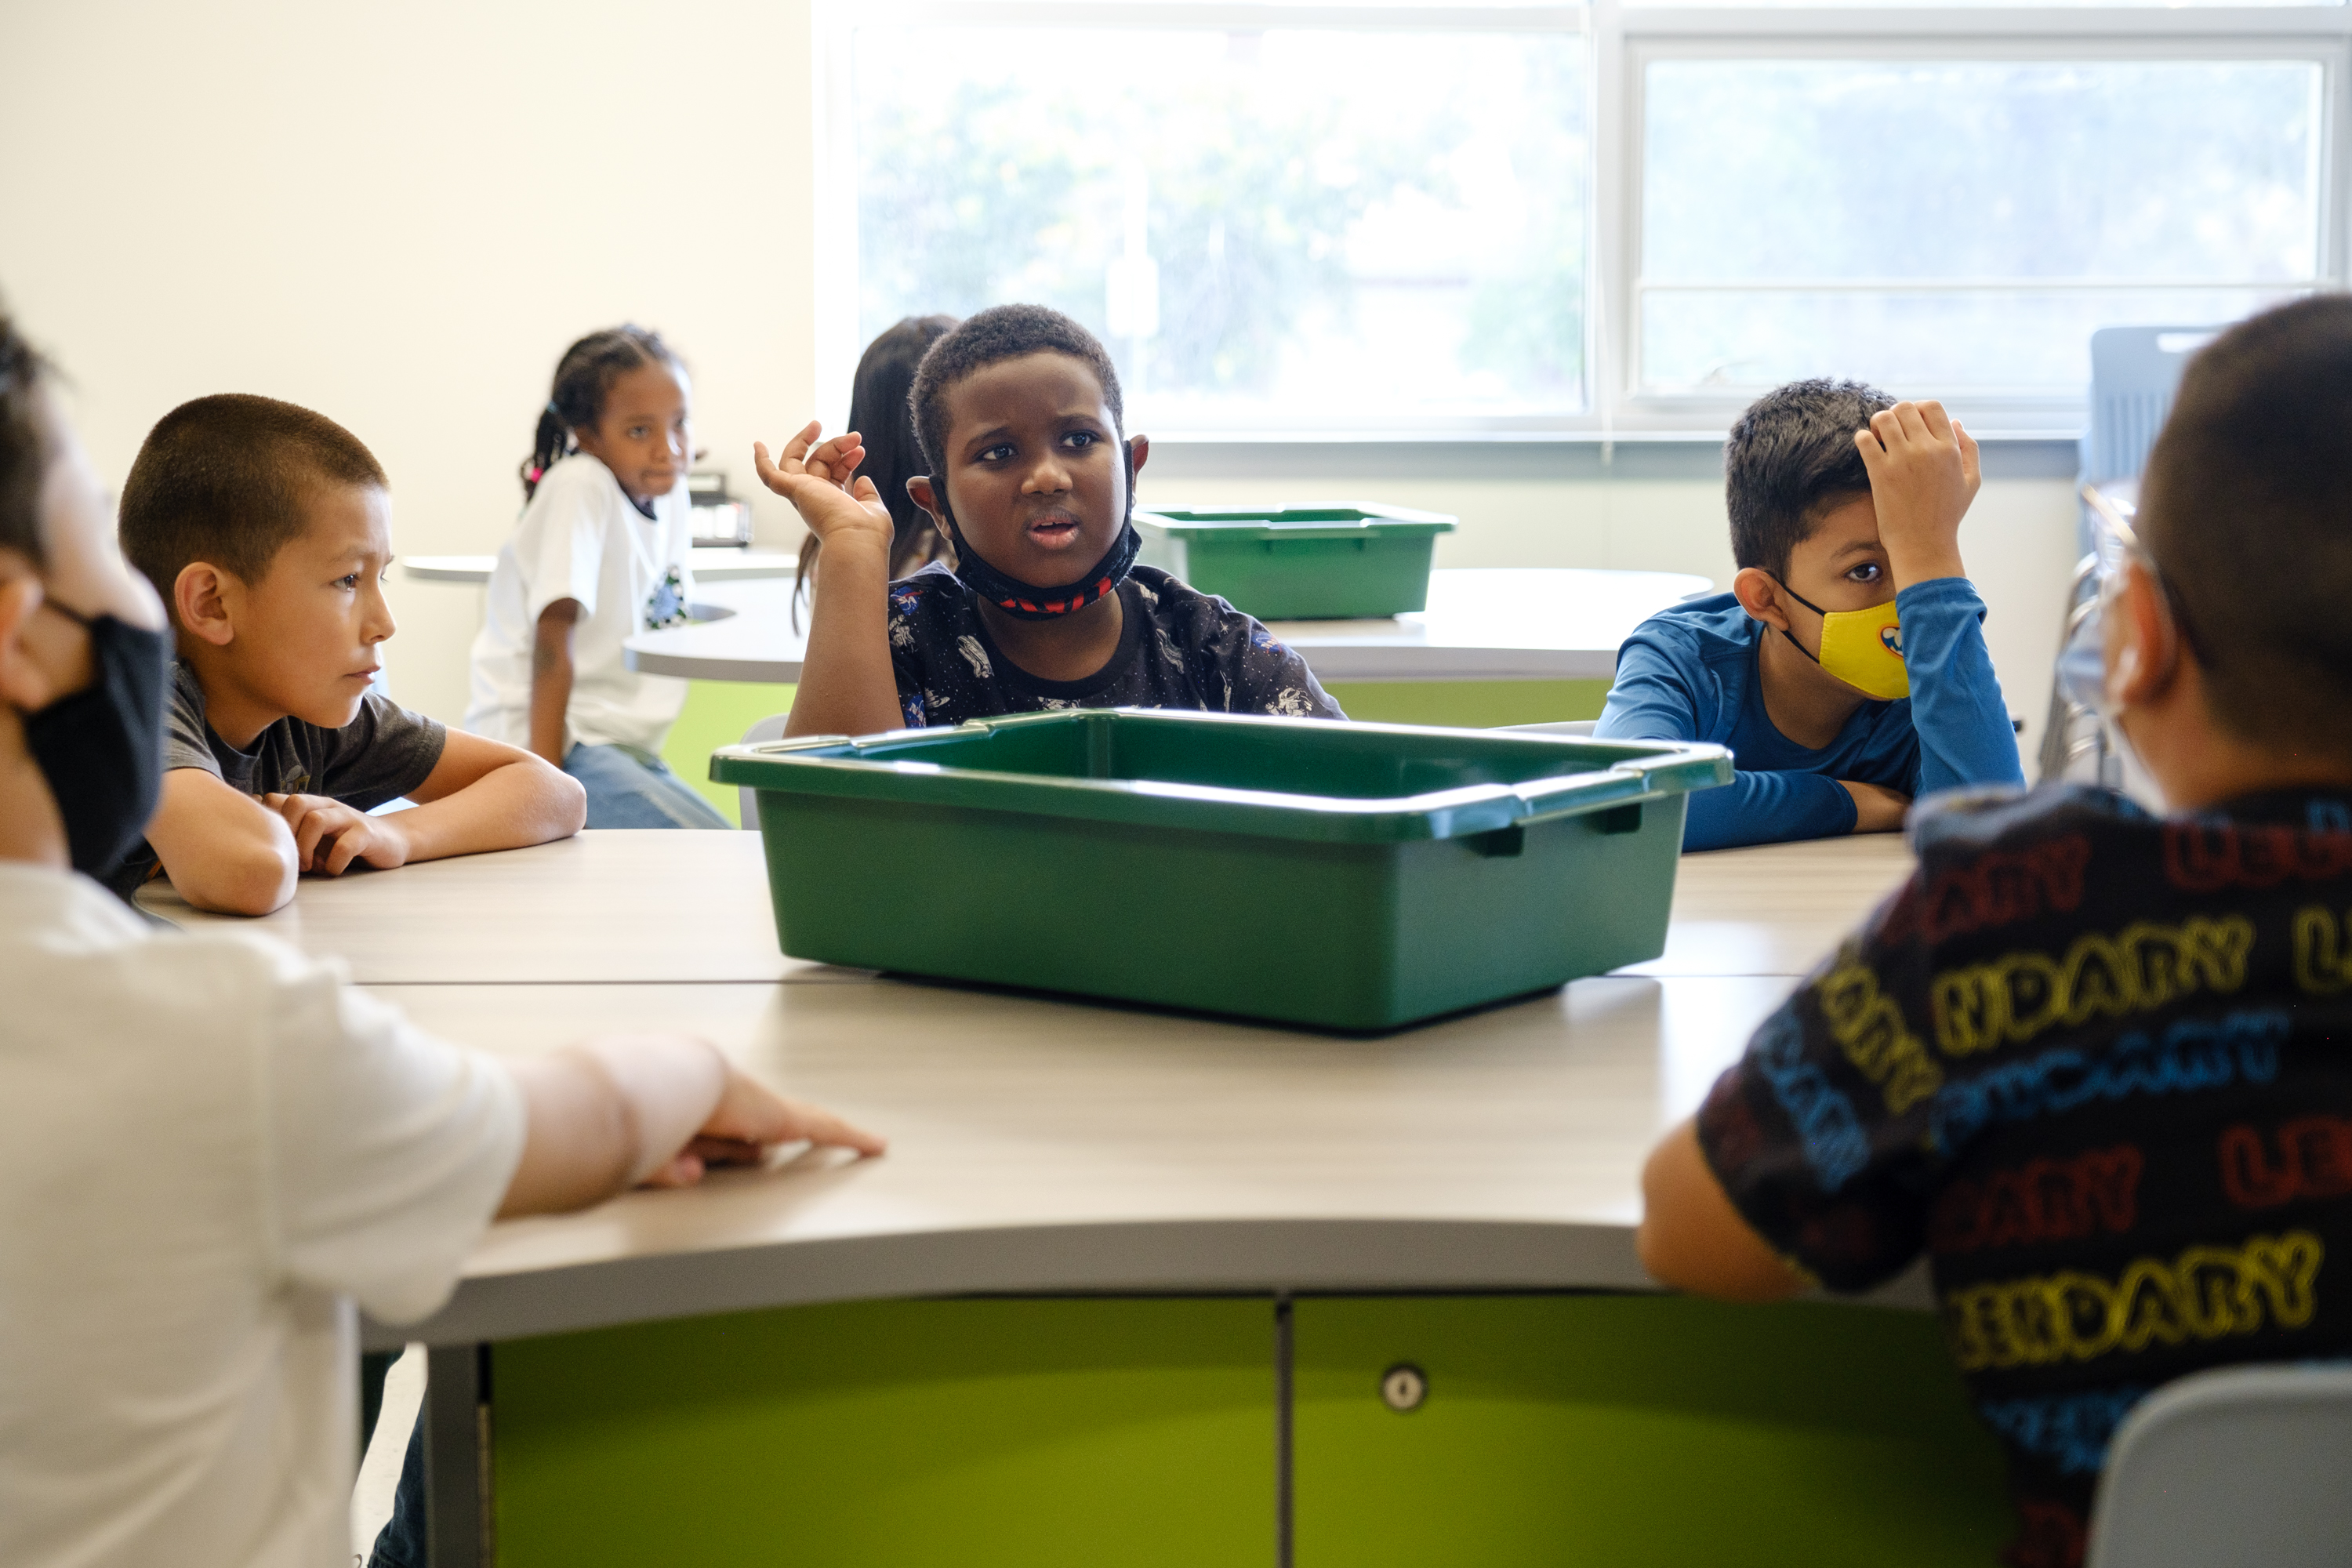 Students with and without masks sit around a table with a green plastic bin in the middle of the table.